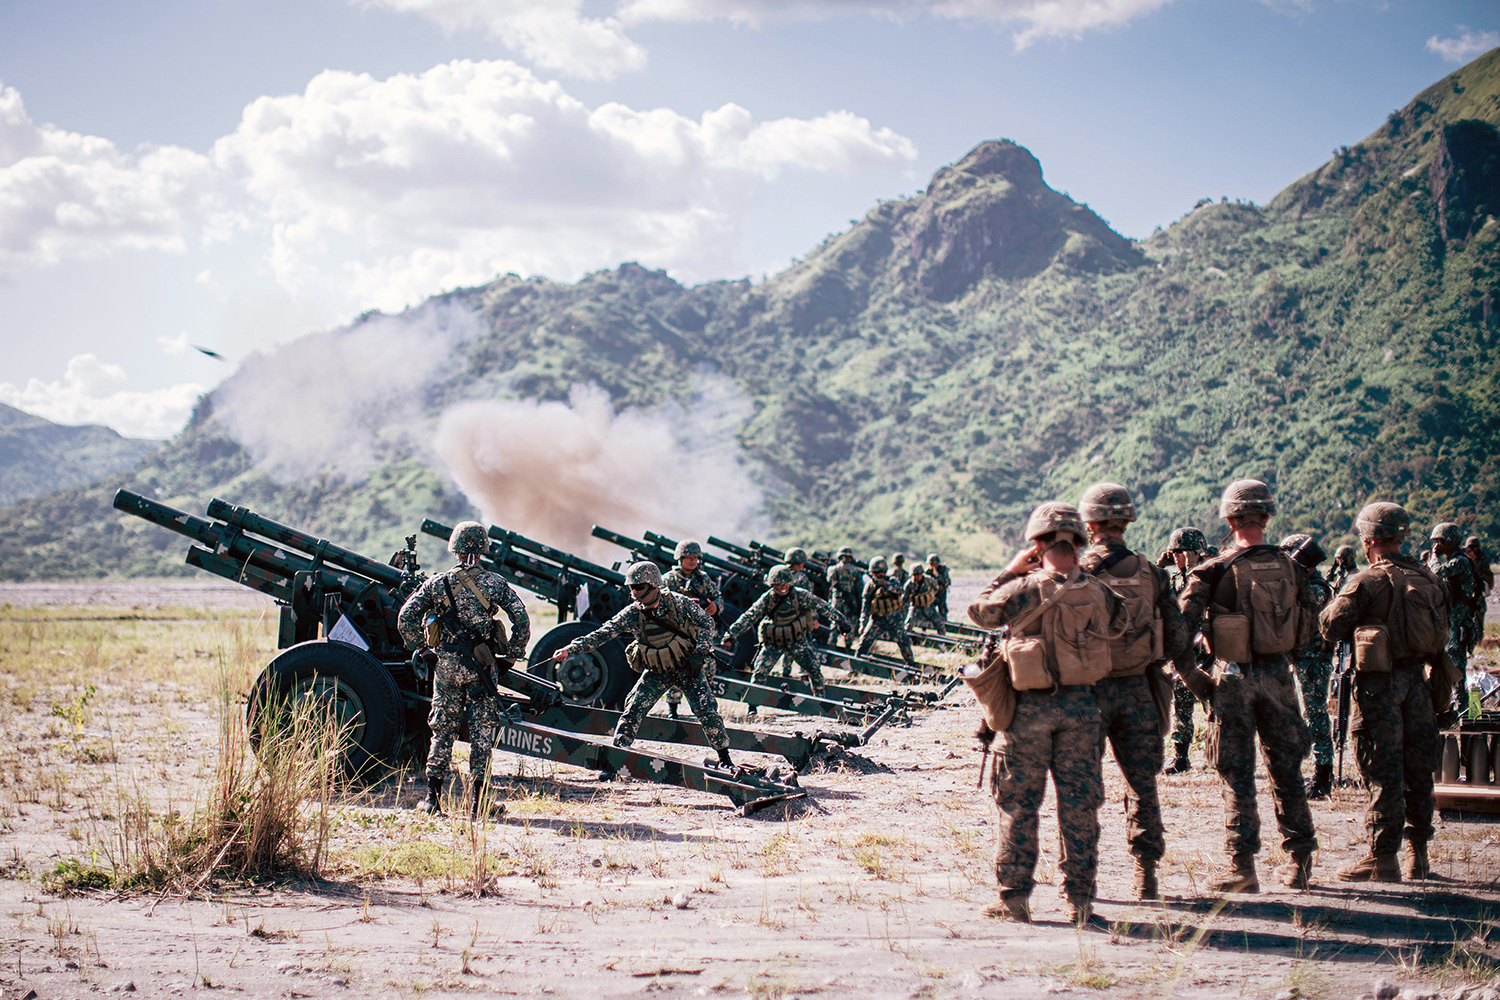 U.S. Marines observe Philippine Marines fire M102 105 mm howitzers during exercise KAMANDAG 3 at Colonel Ernesto Ravina Air Base, Philippines, Oct. 15, 2019. (Staff Sgt. Donald Holbert/Marine Corps)